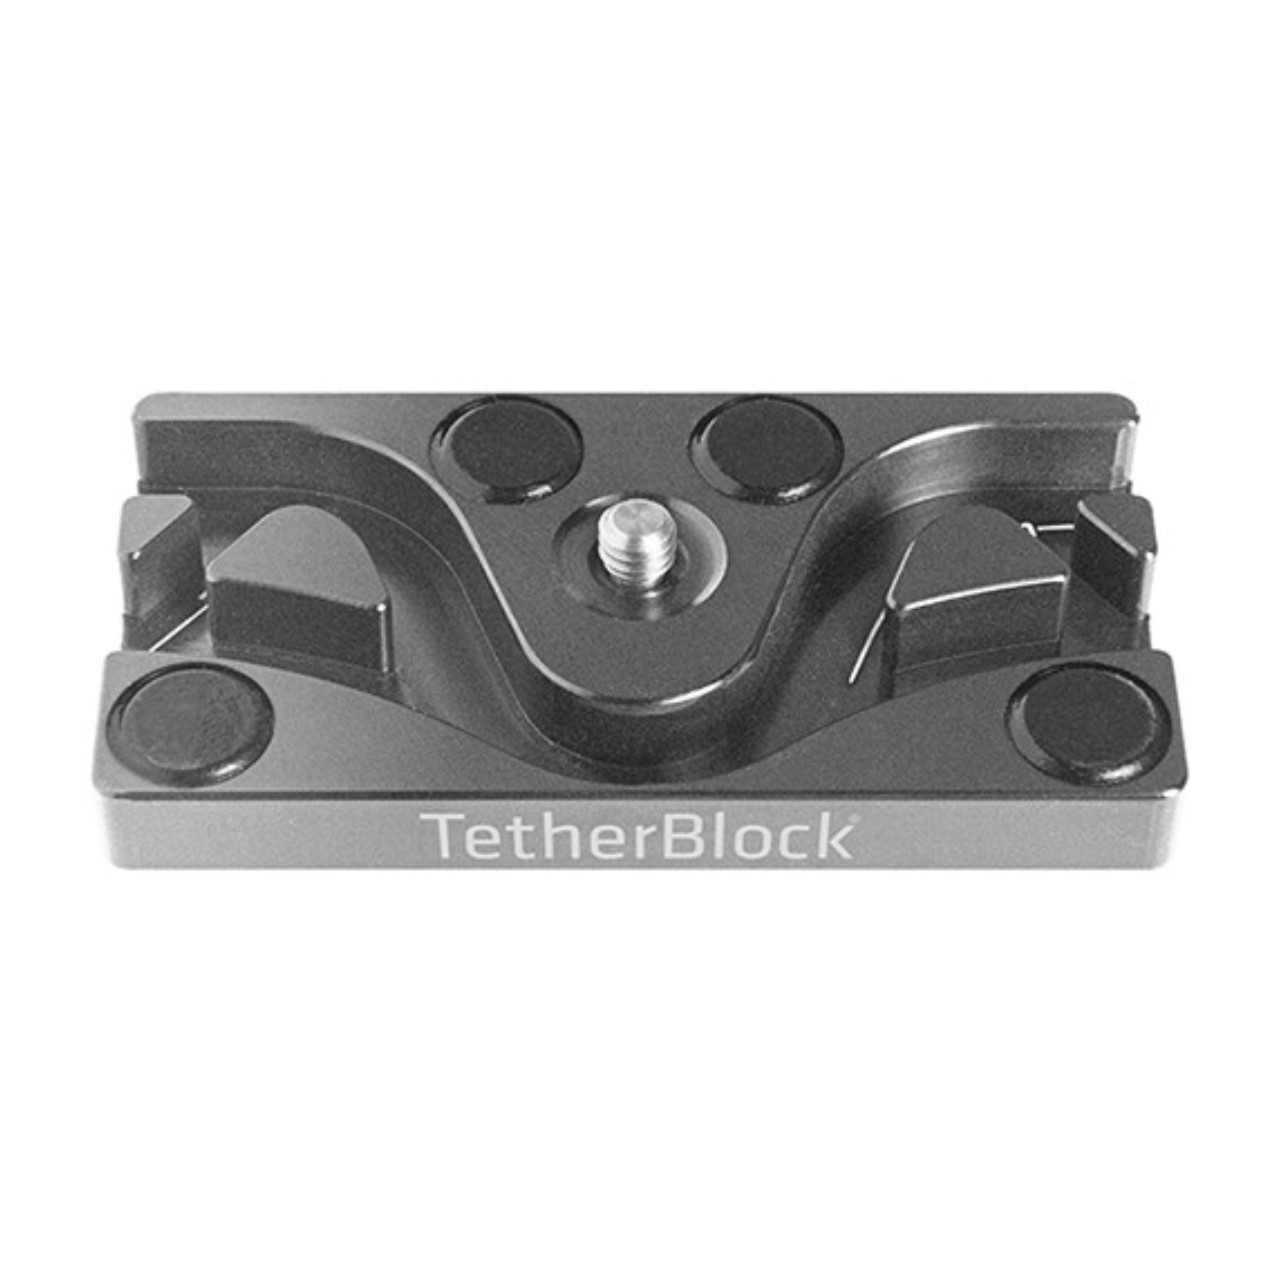 Tetherblock Mc Multi Cable Mounting Plate Cabel & Accessories Cabel & Accessories